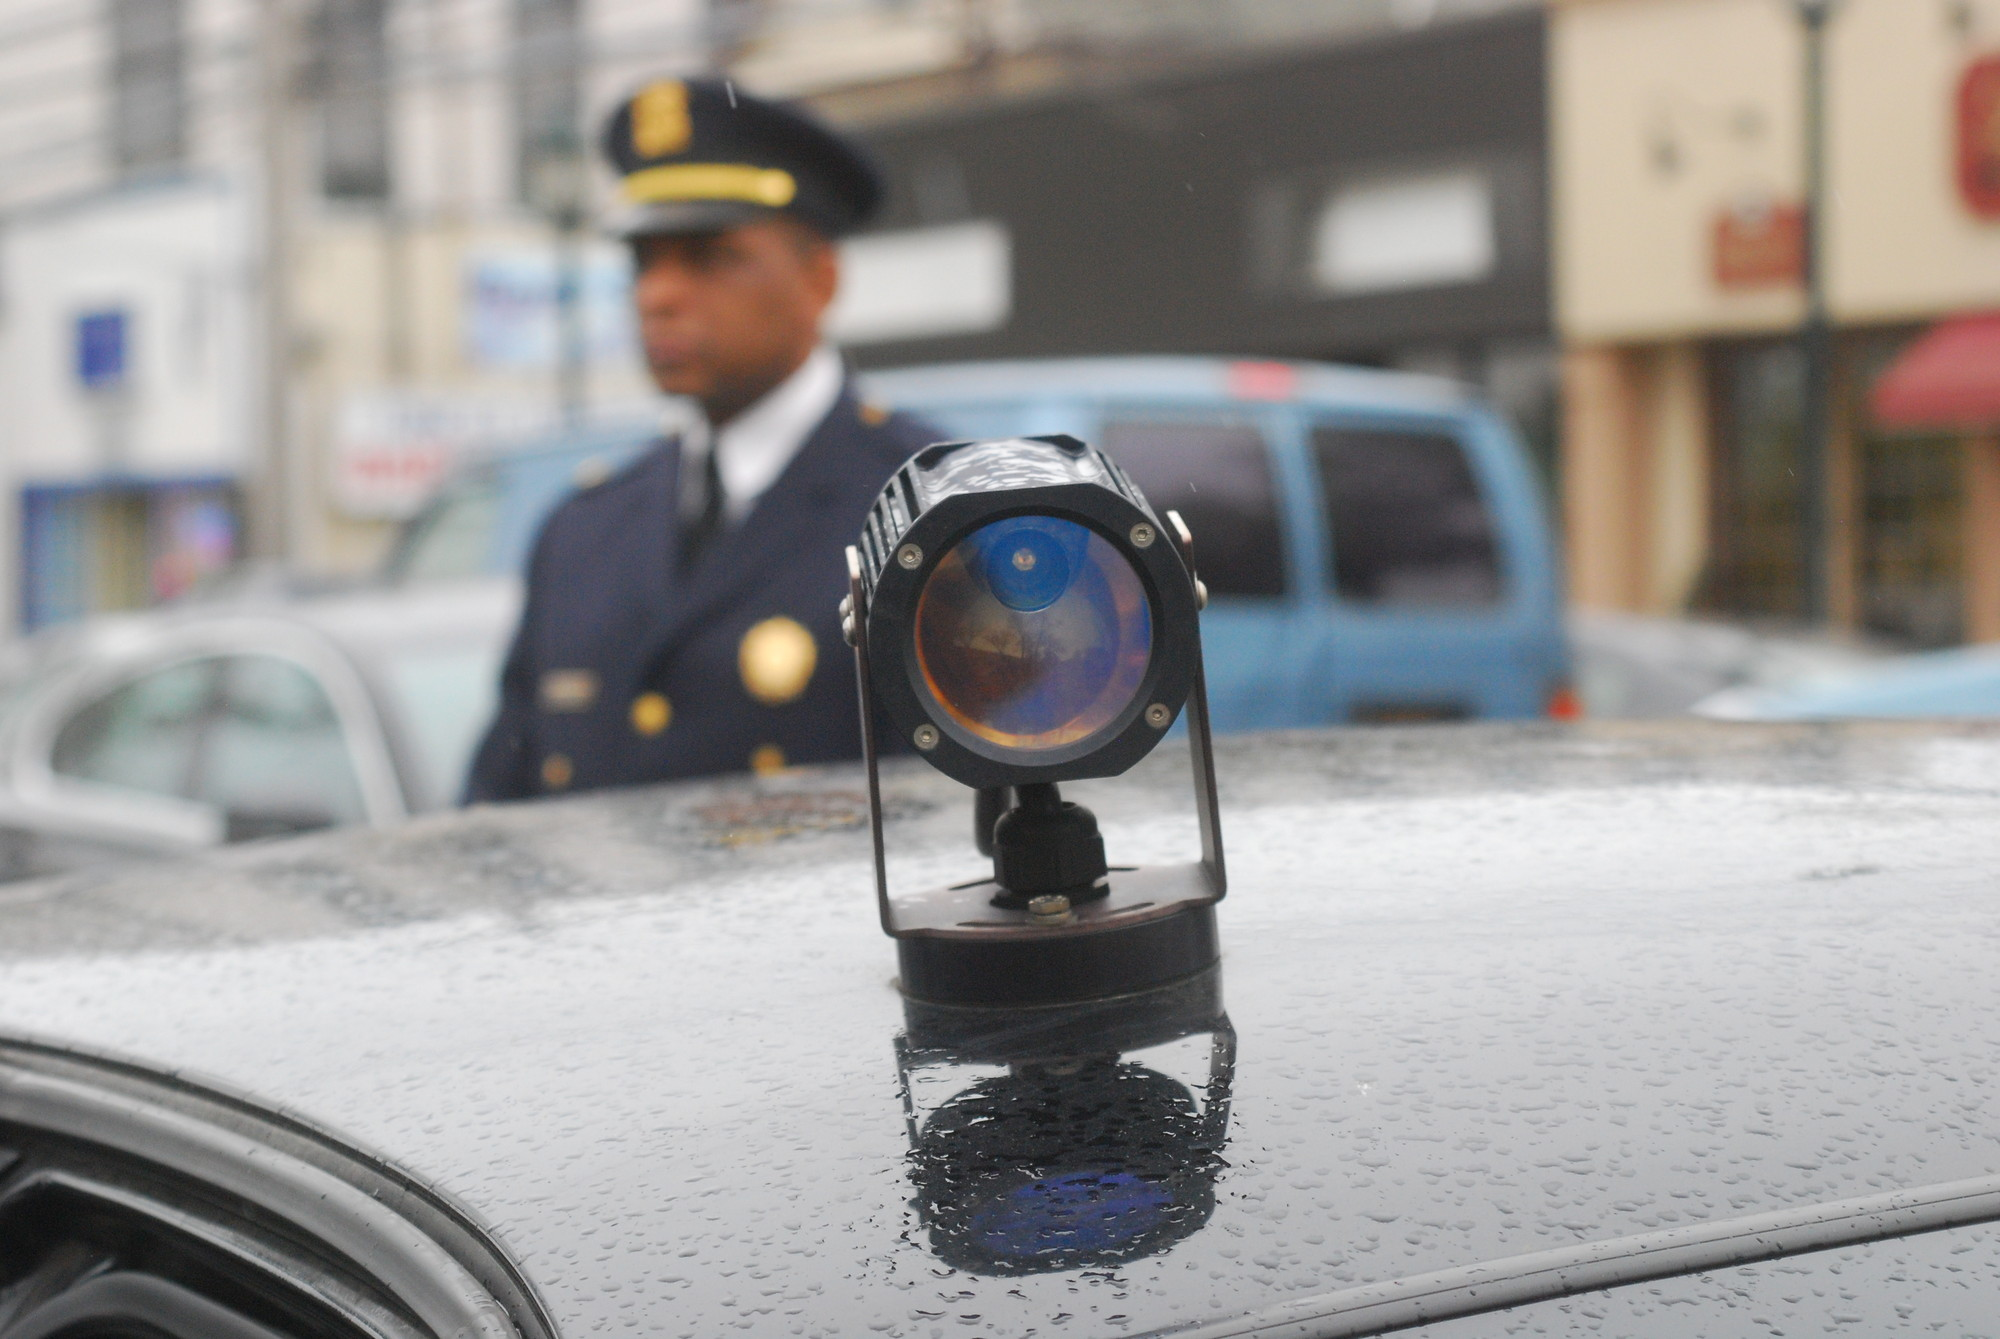 Police will be using license plate readers like this one on unmarked cars to help track down the suspect or suspects.